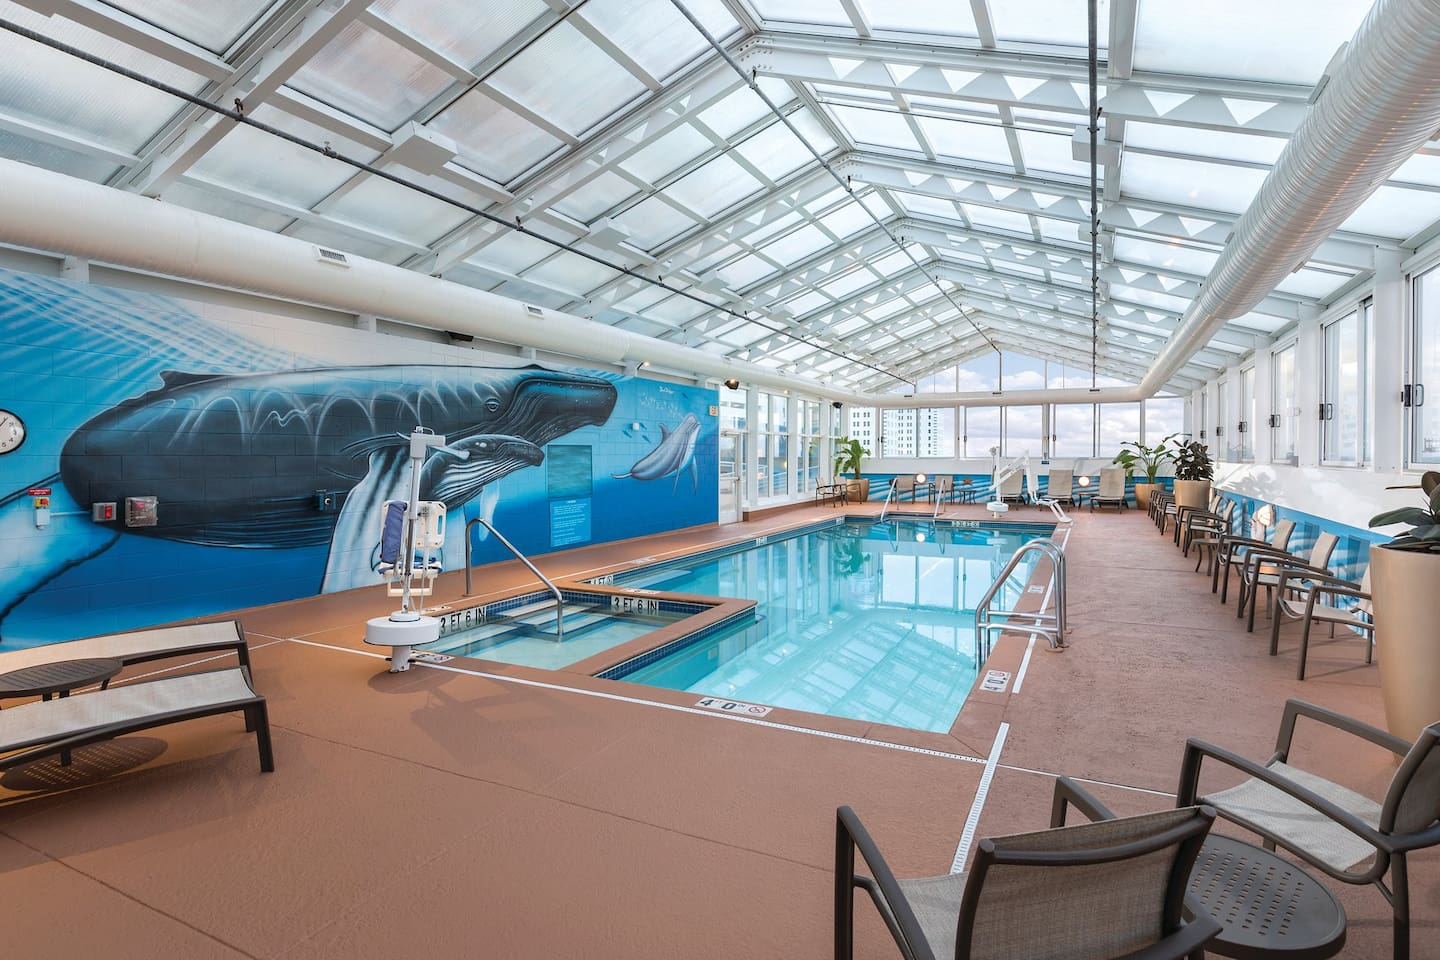 Take a dip in the pool, year round!  This swimming pool sits rooftop. It has a retractable roof, so when the weather is nice, this indoor pool, becomes an outdoor pool!